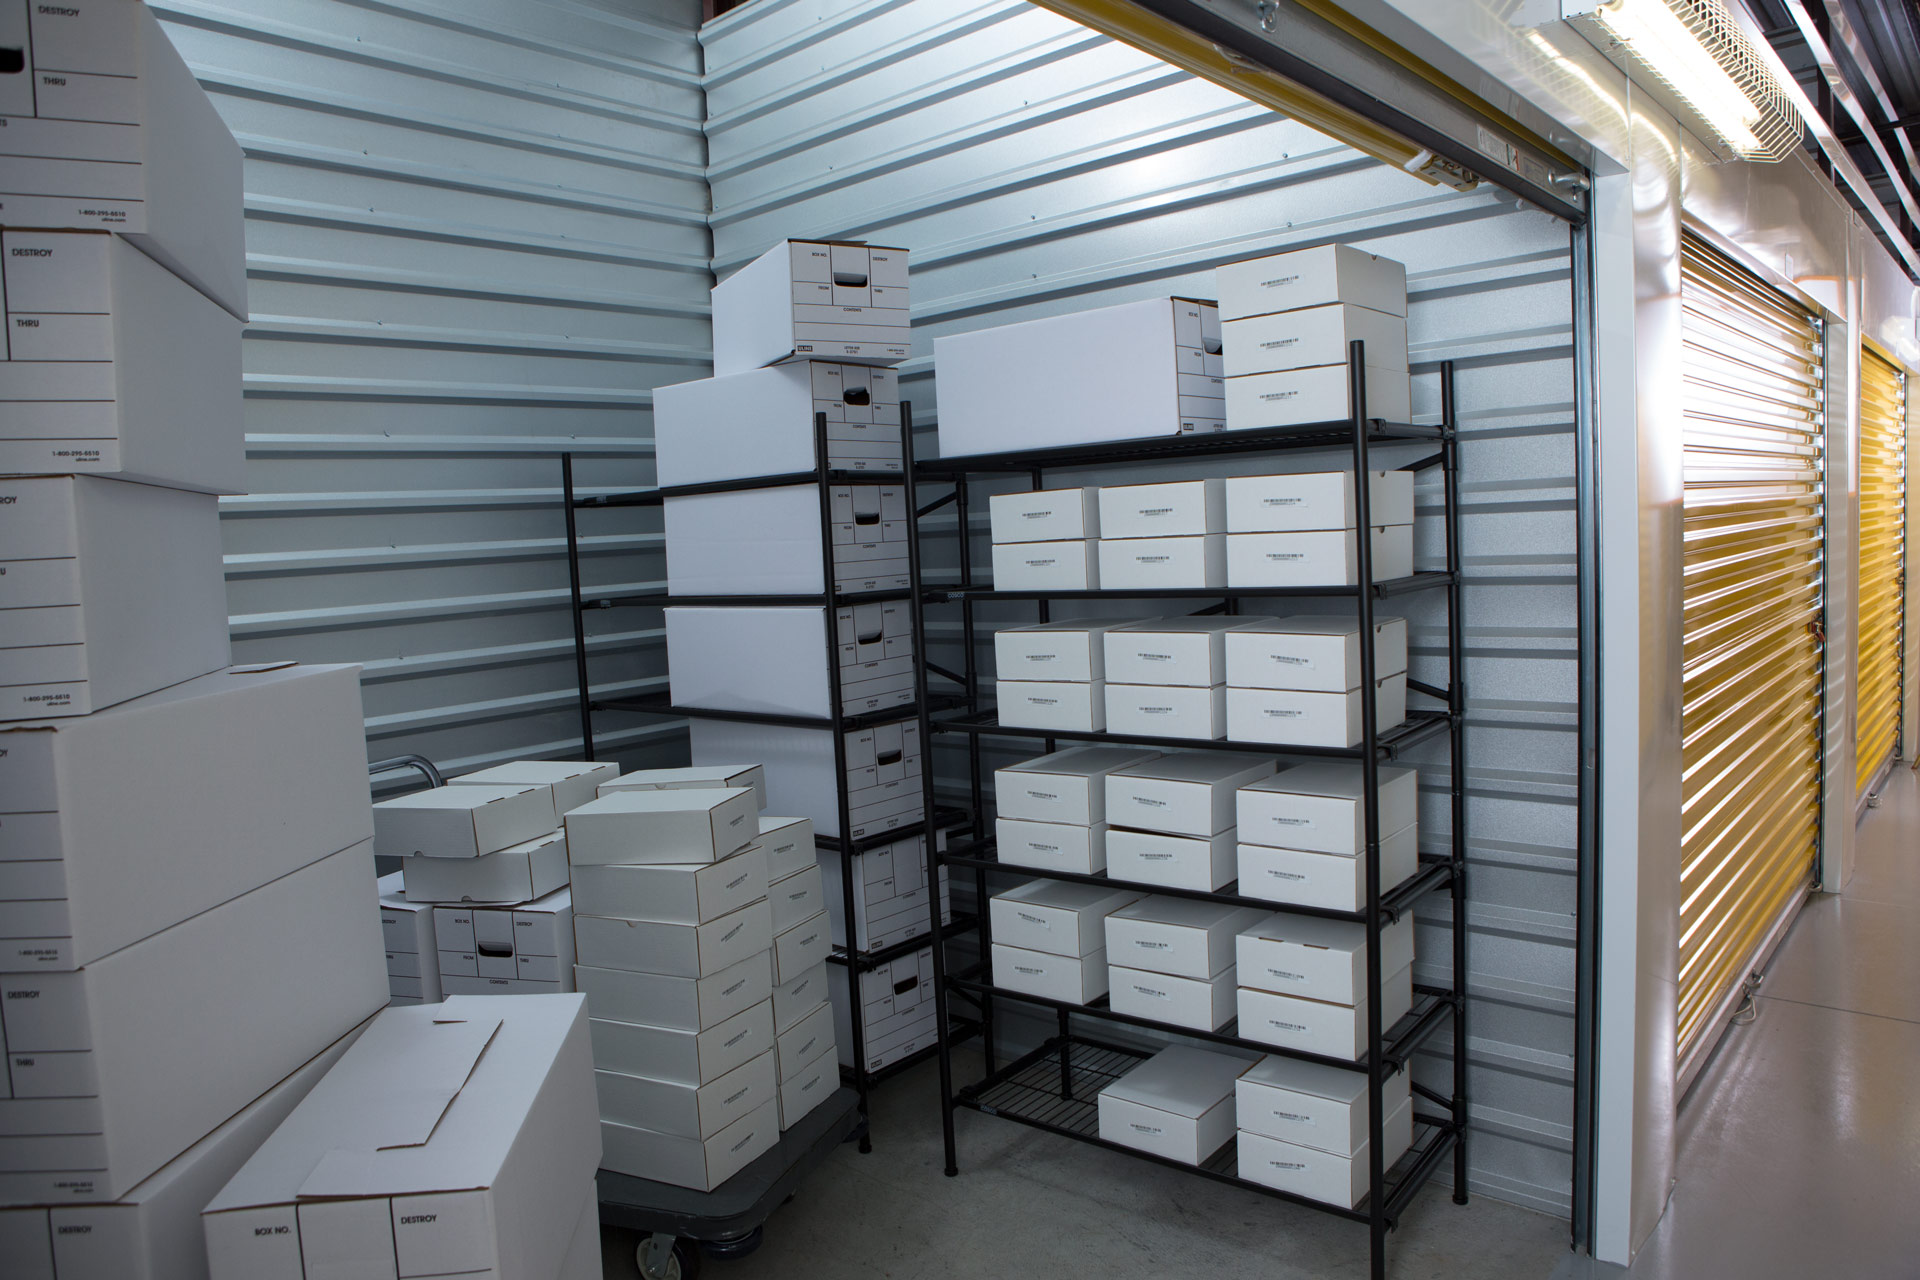 Rent Kentucky Storage Units To Store Your Stuff